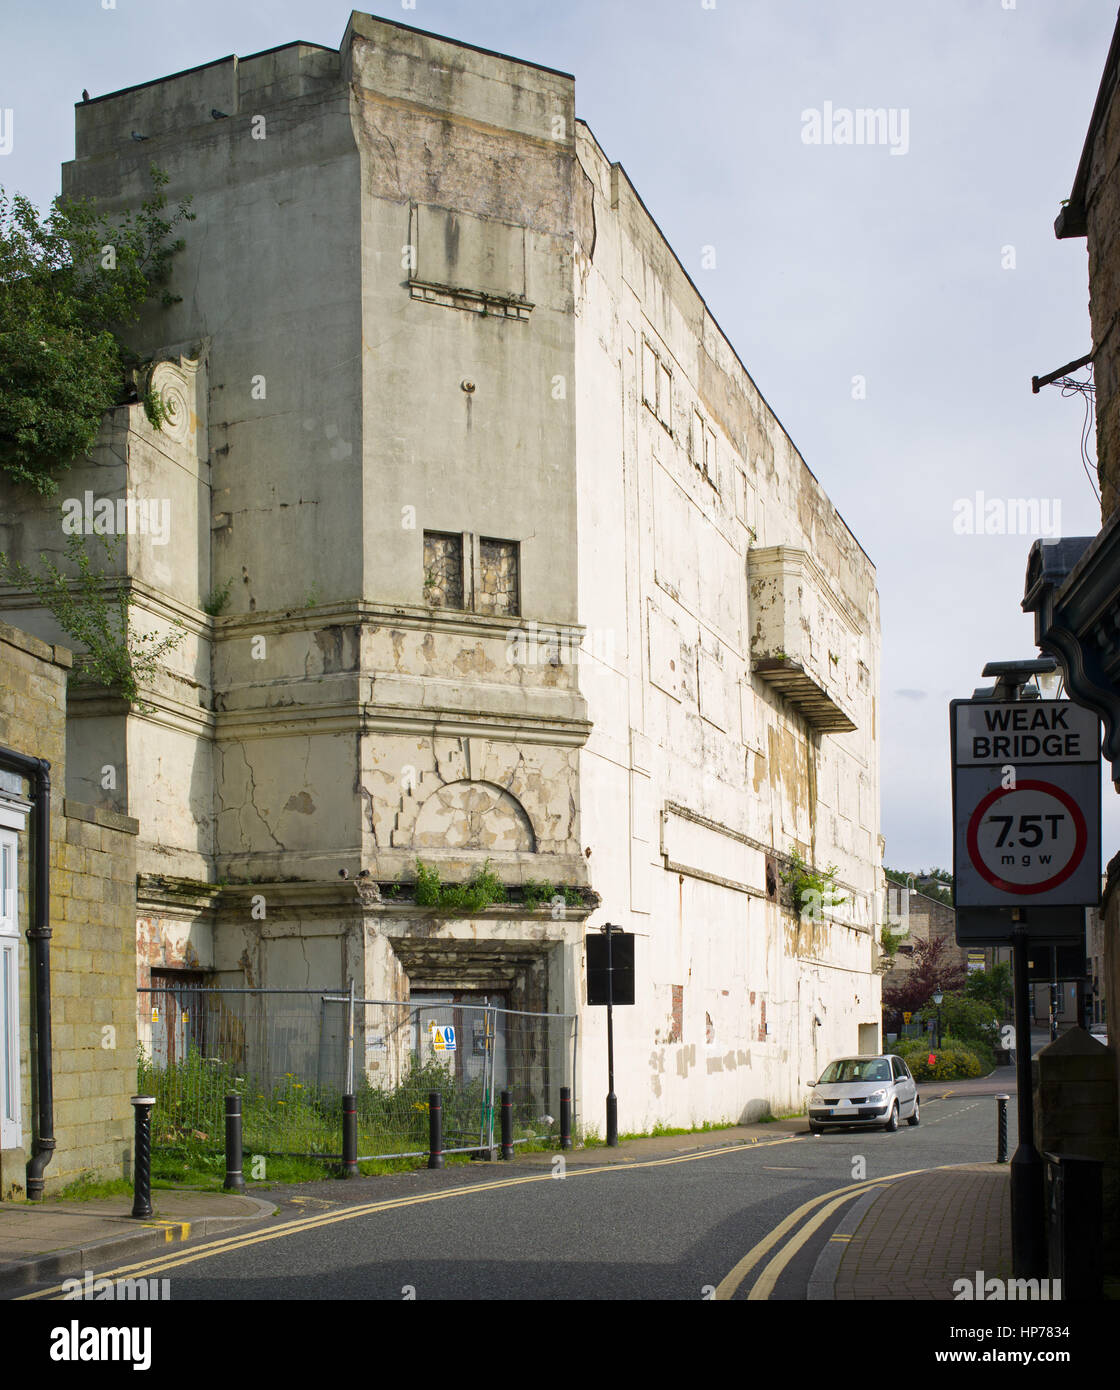 Exterior of derelict cinema building, Burnley, Lancashire - Stock Image